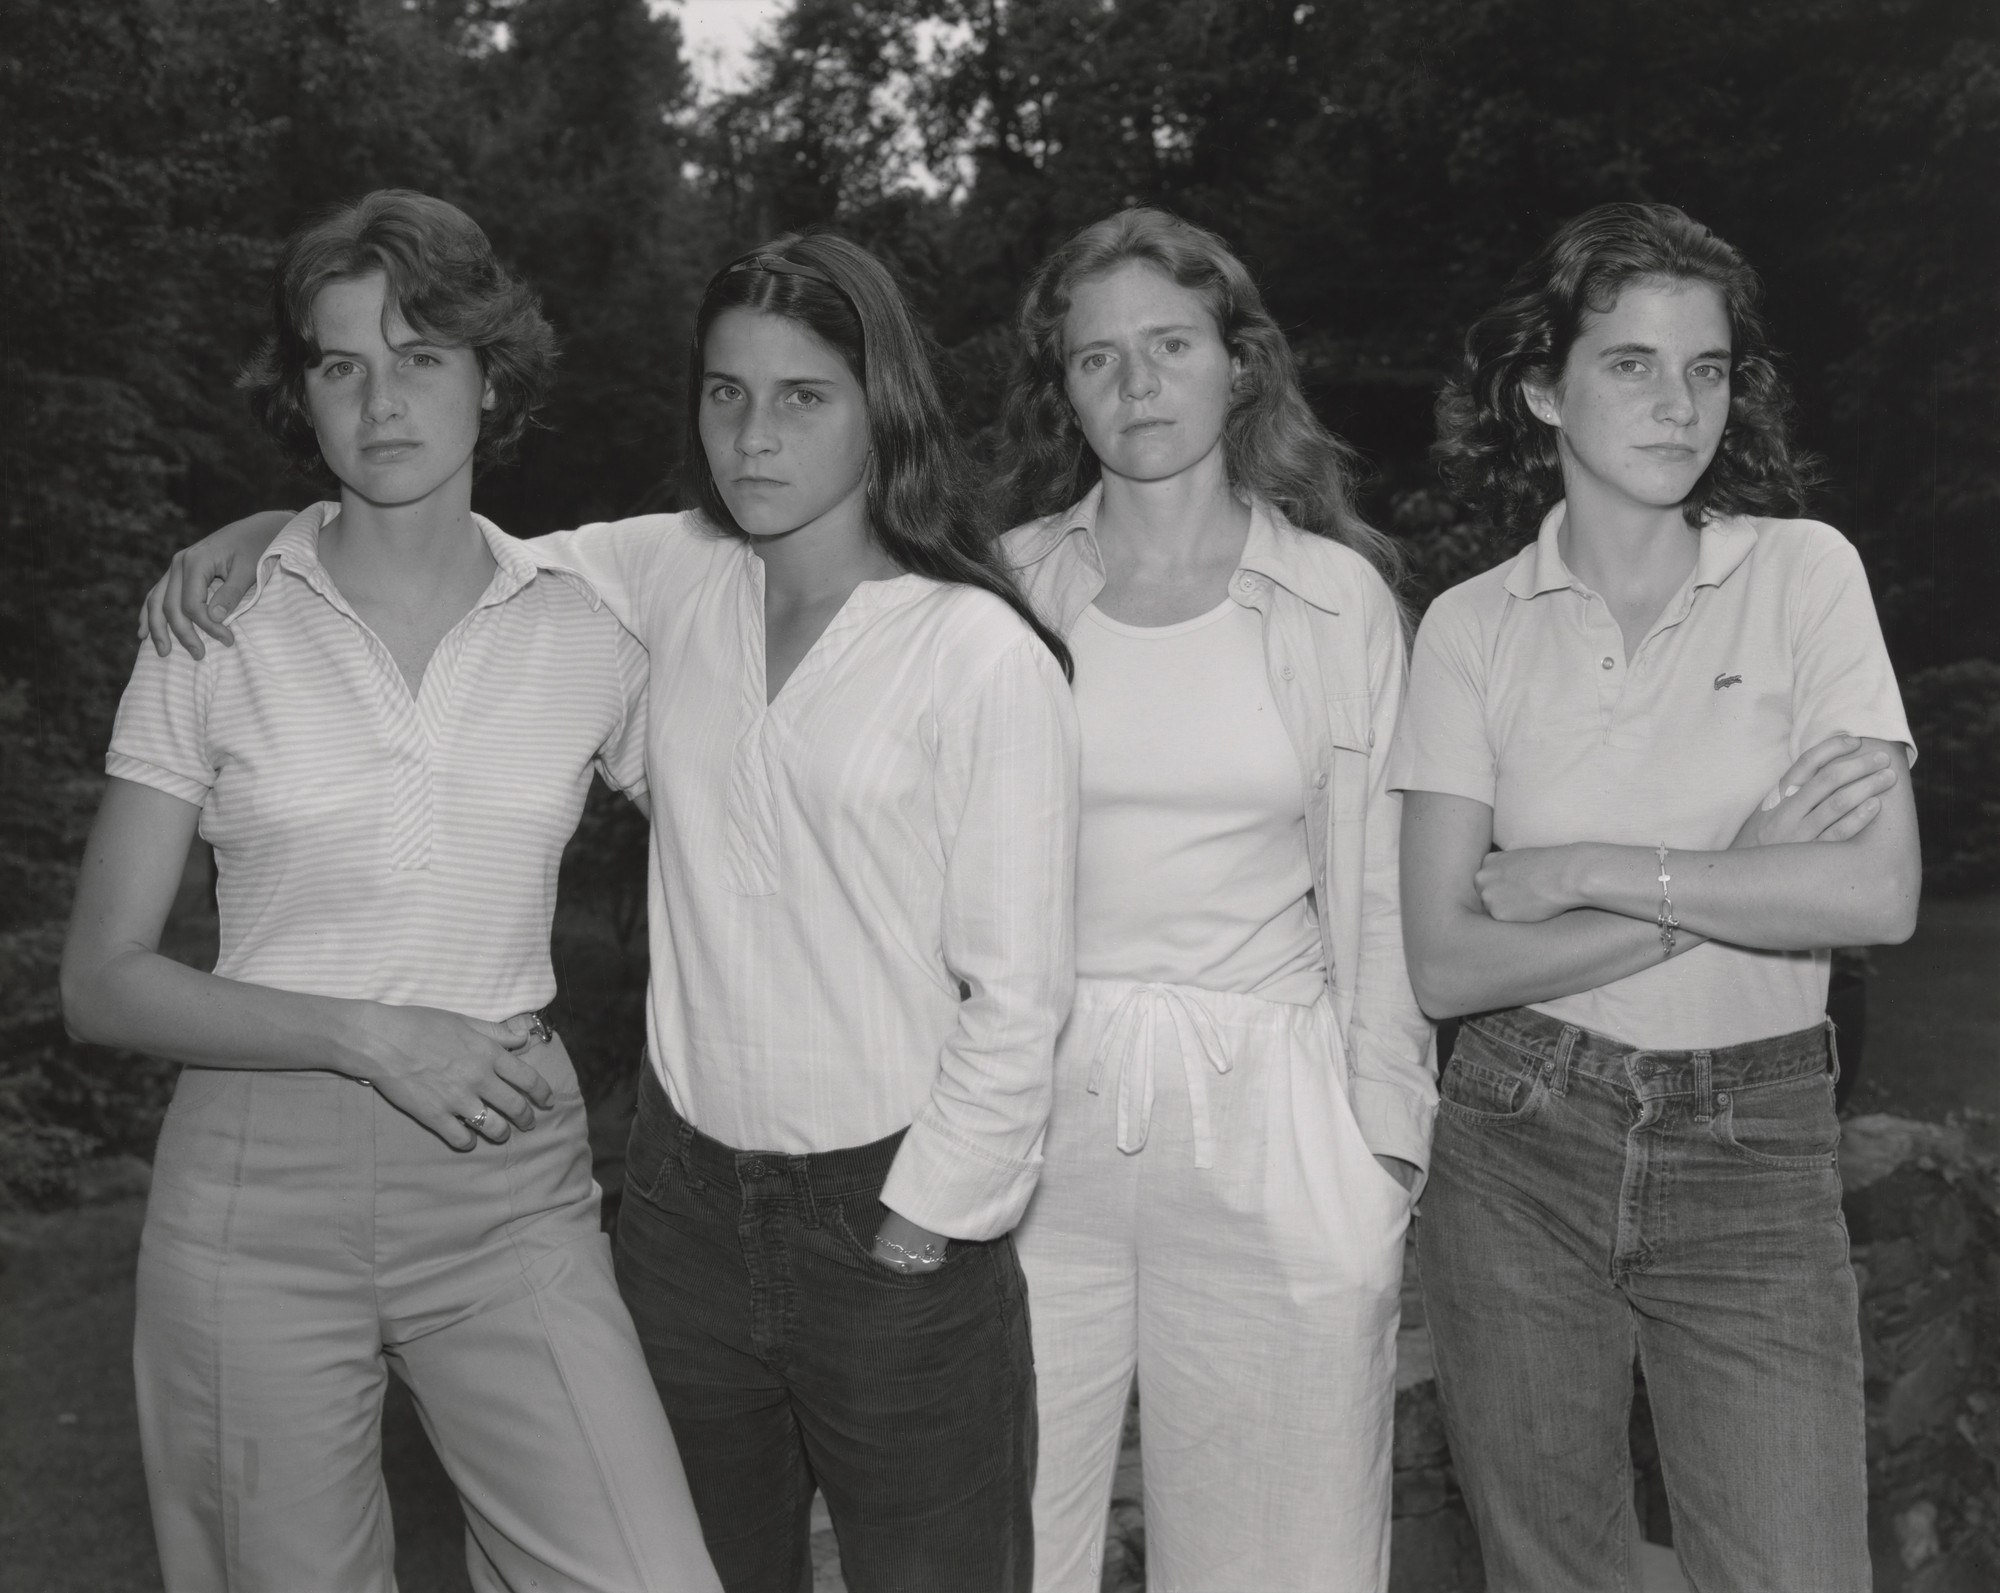 Nicholas Nixon. The Brown Sisters, New Canaan, Connecticut. 1975